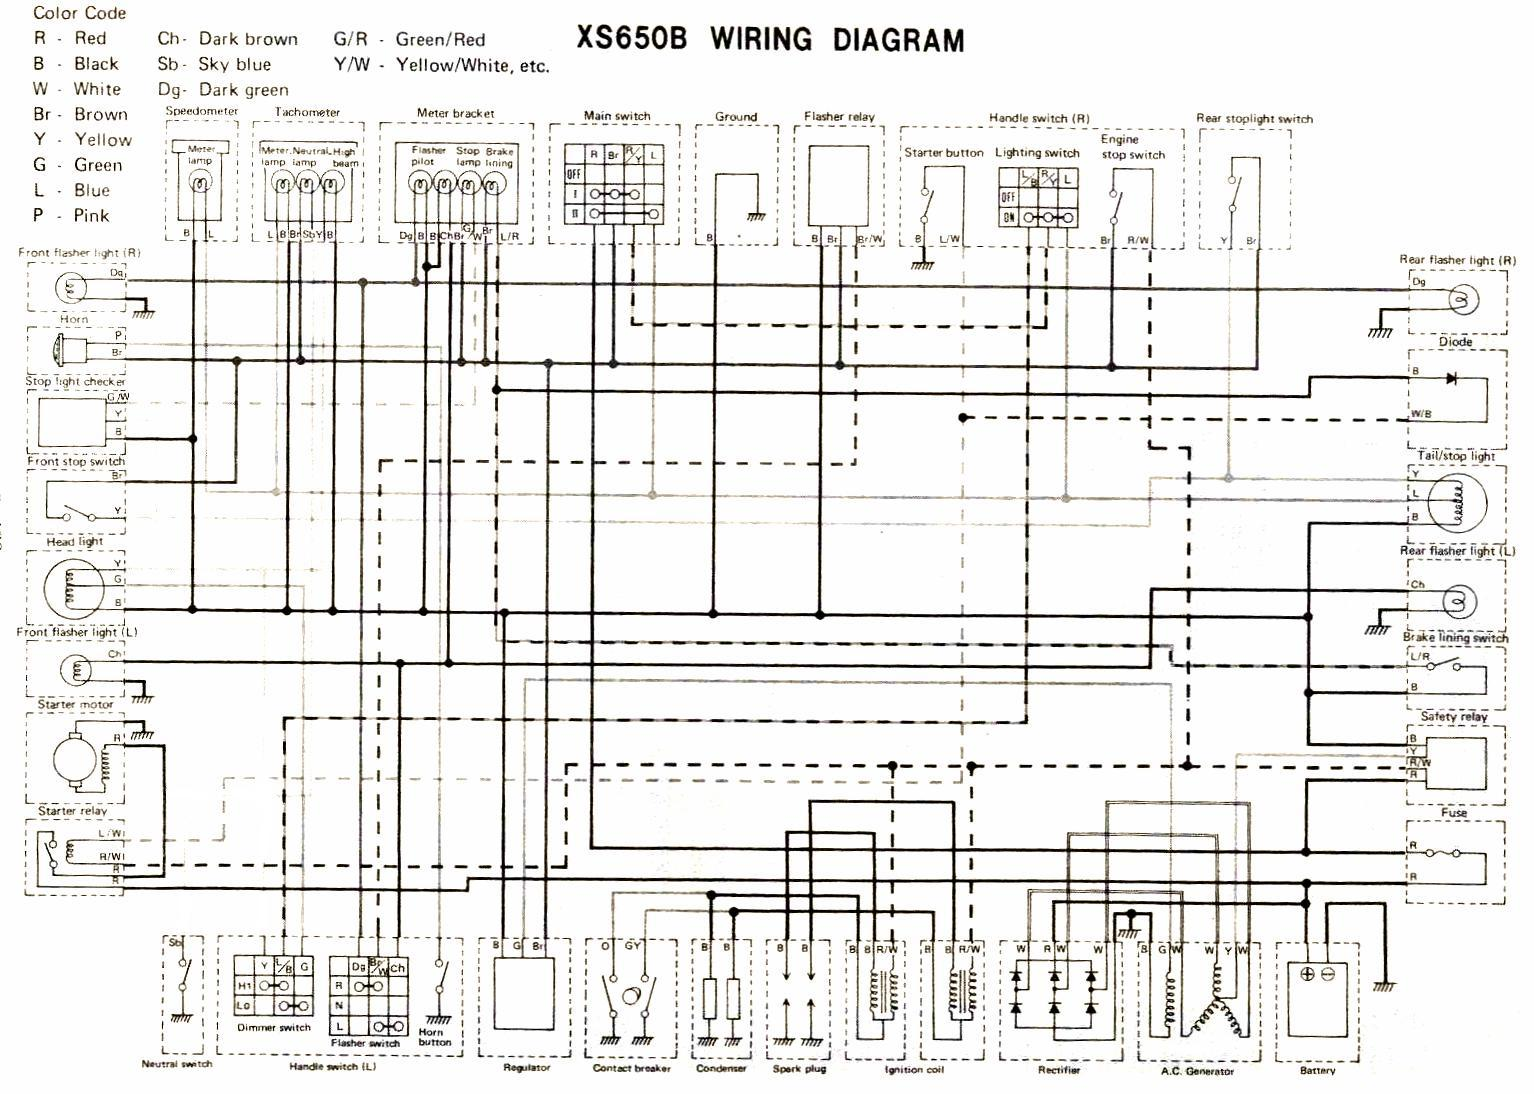 Wiring Diagrams 77 Kawasaki Kz1000 Diagram 1975 Xs650b 1977 Xs650d